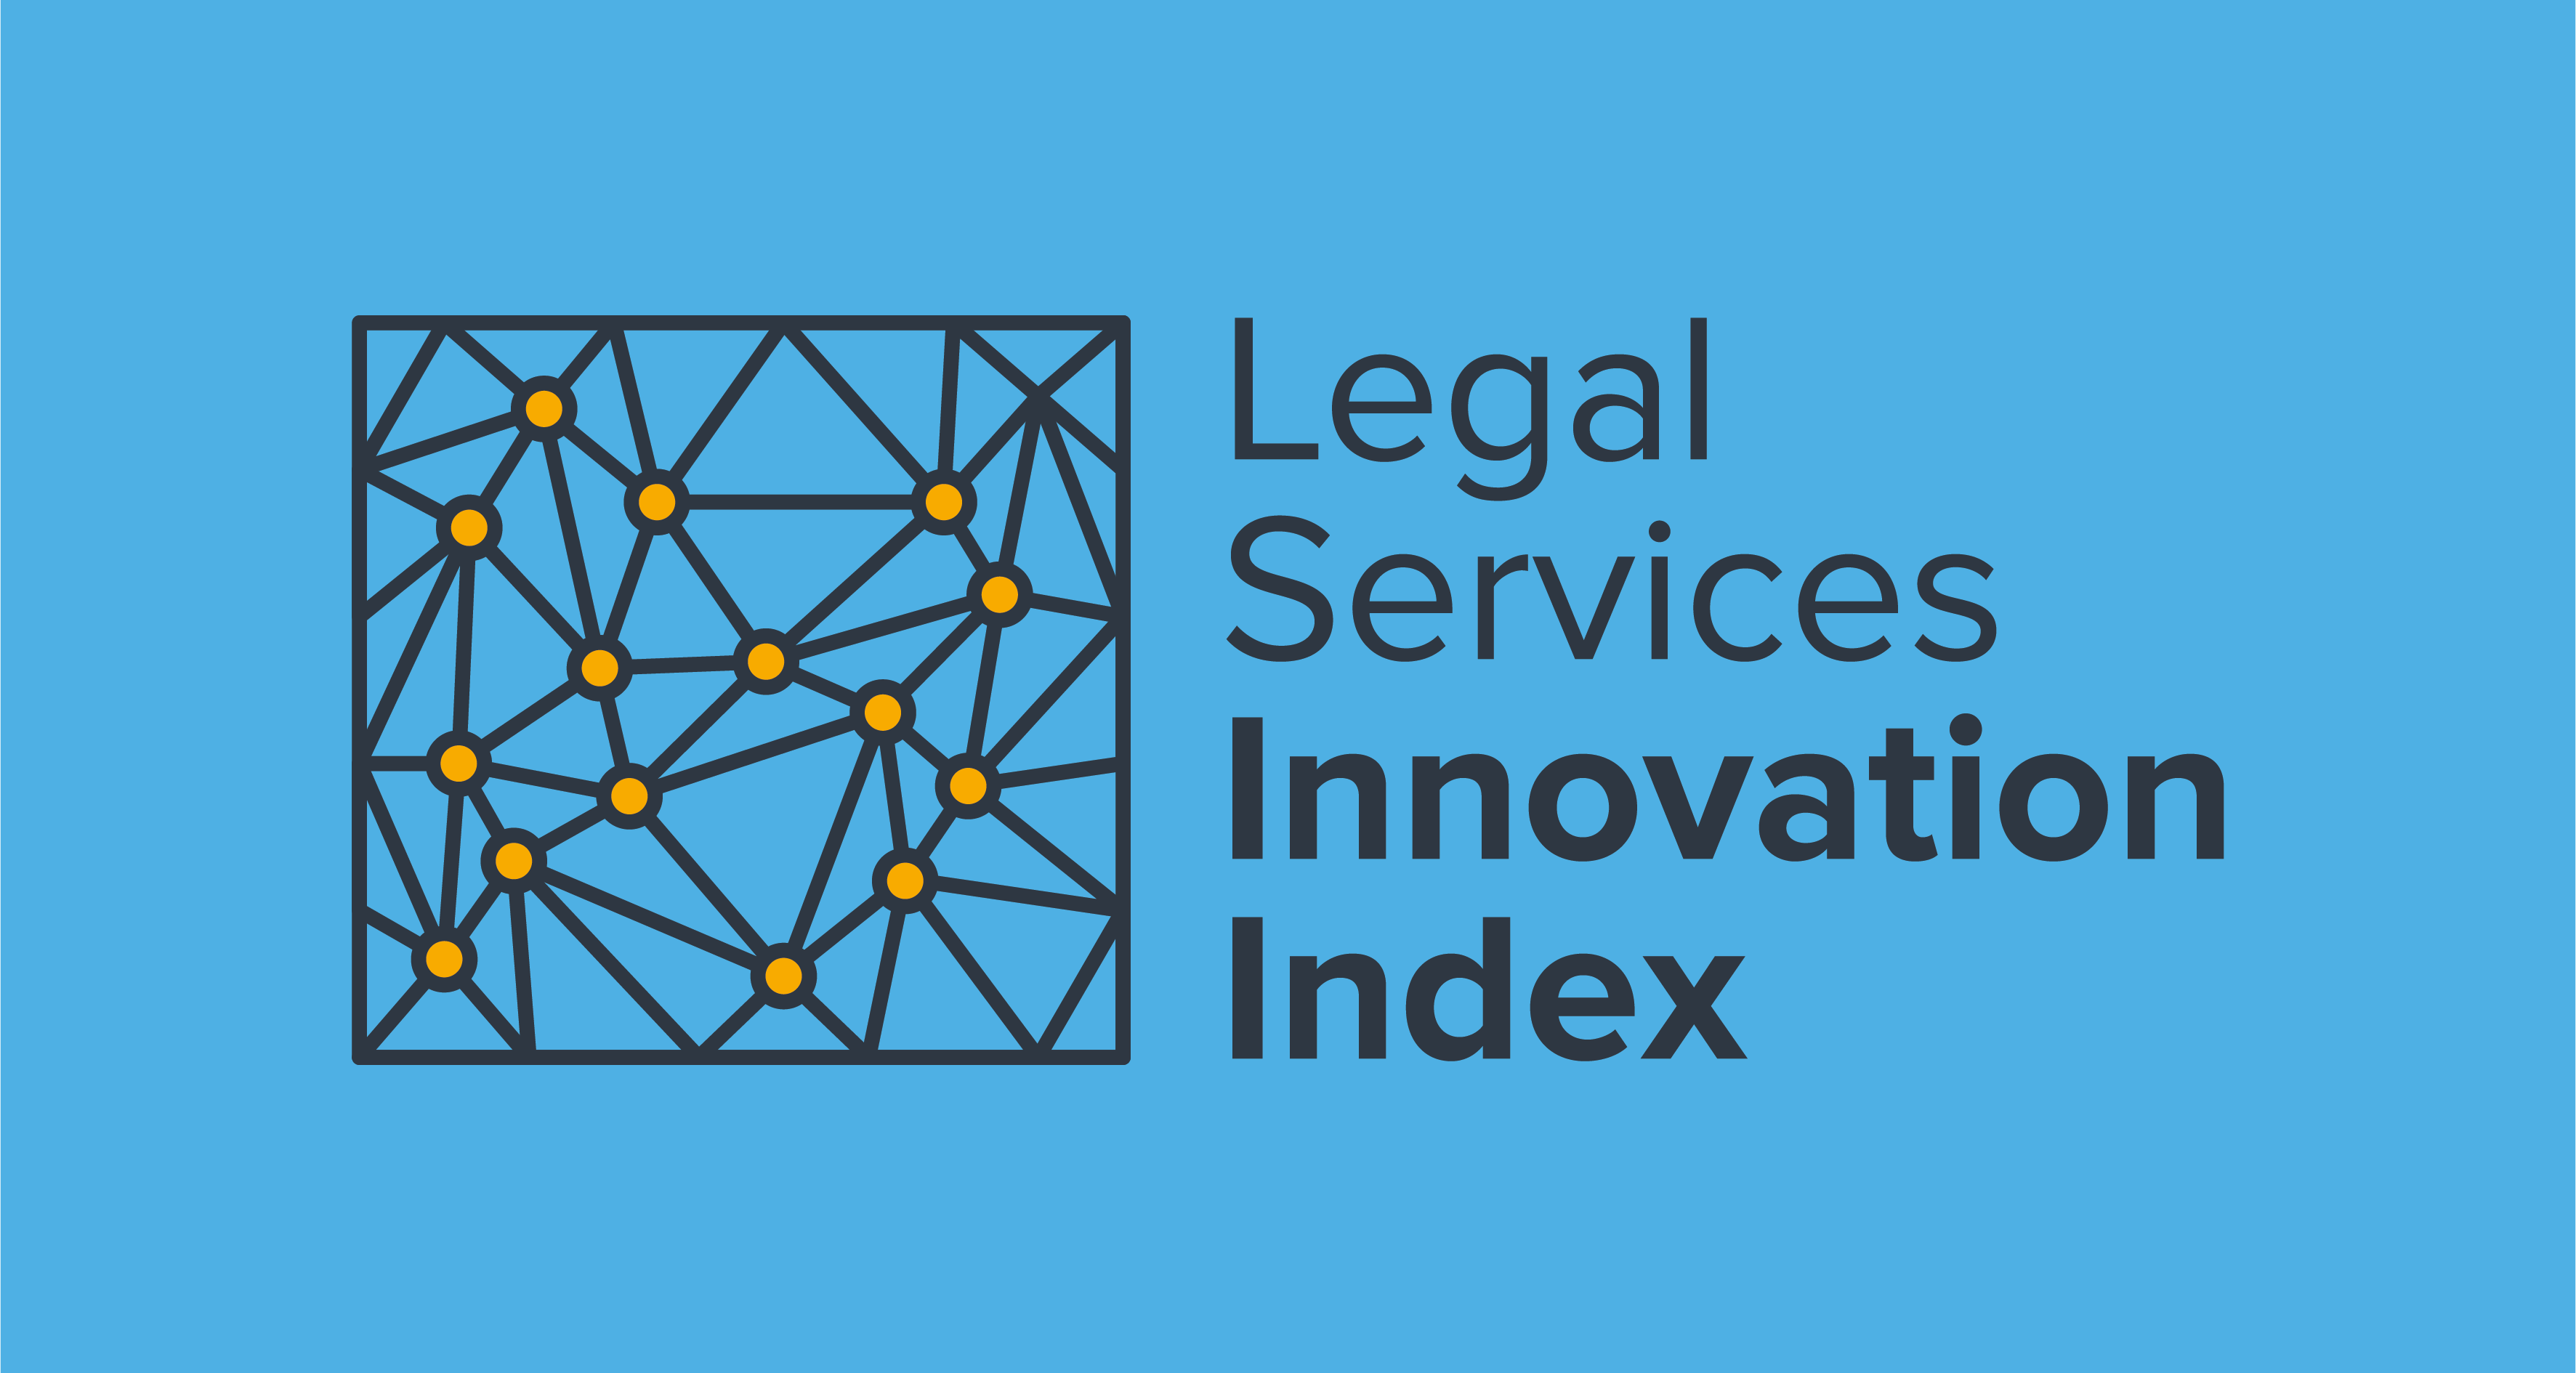 Legal Services Innovation Index